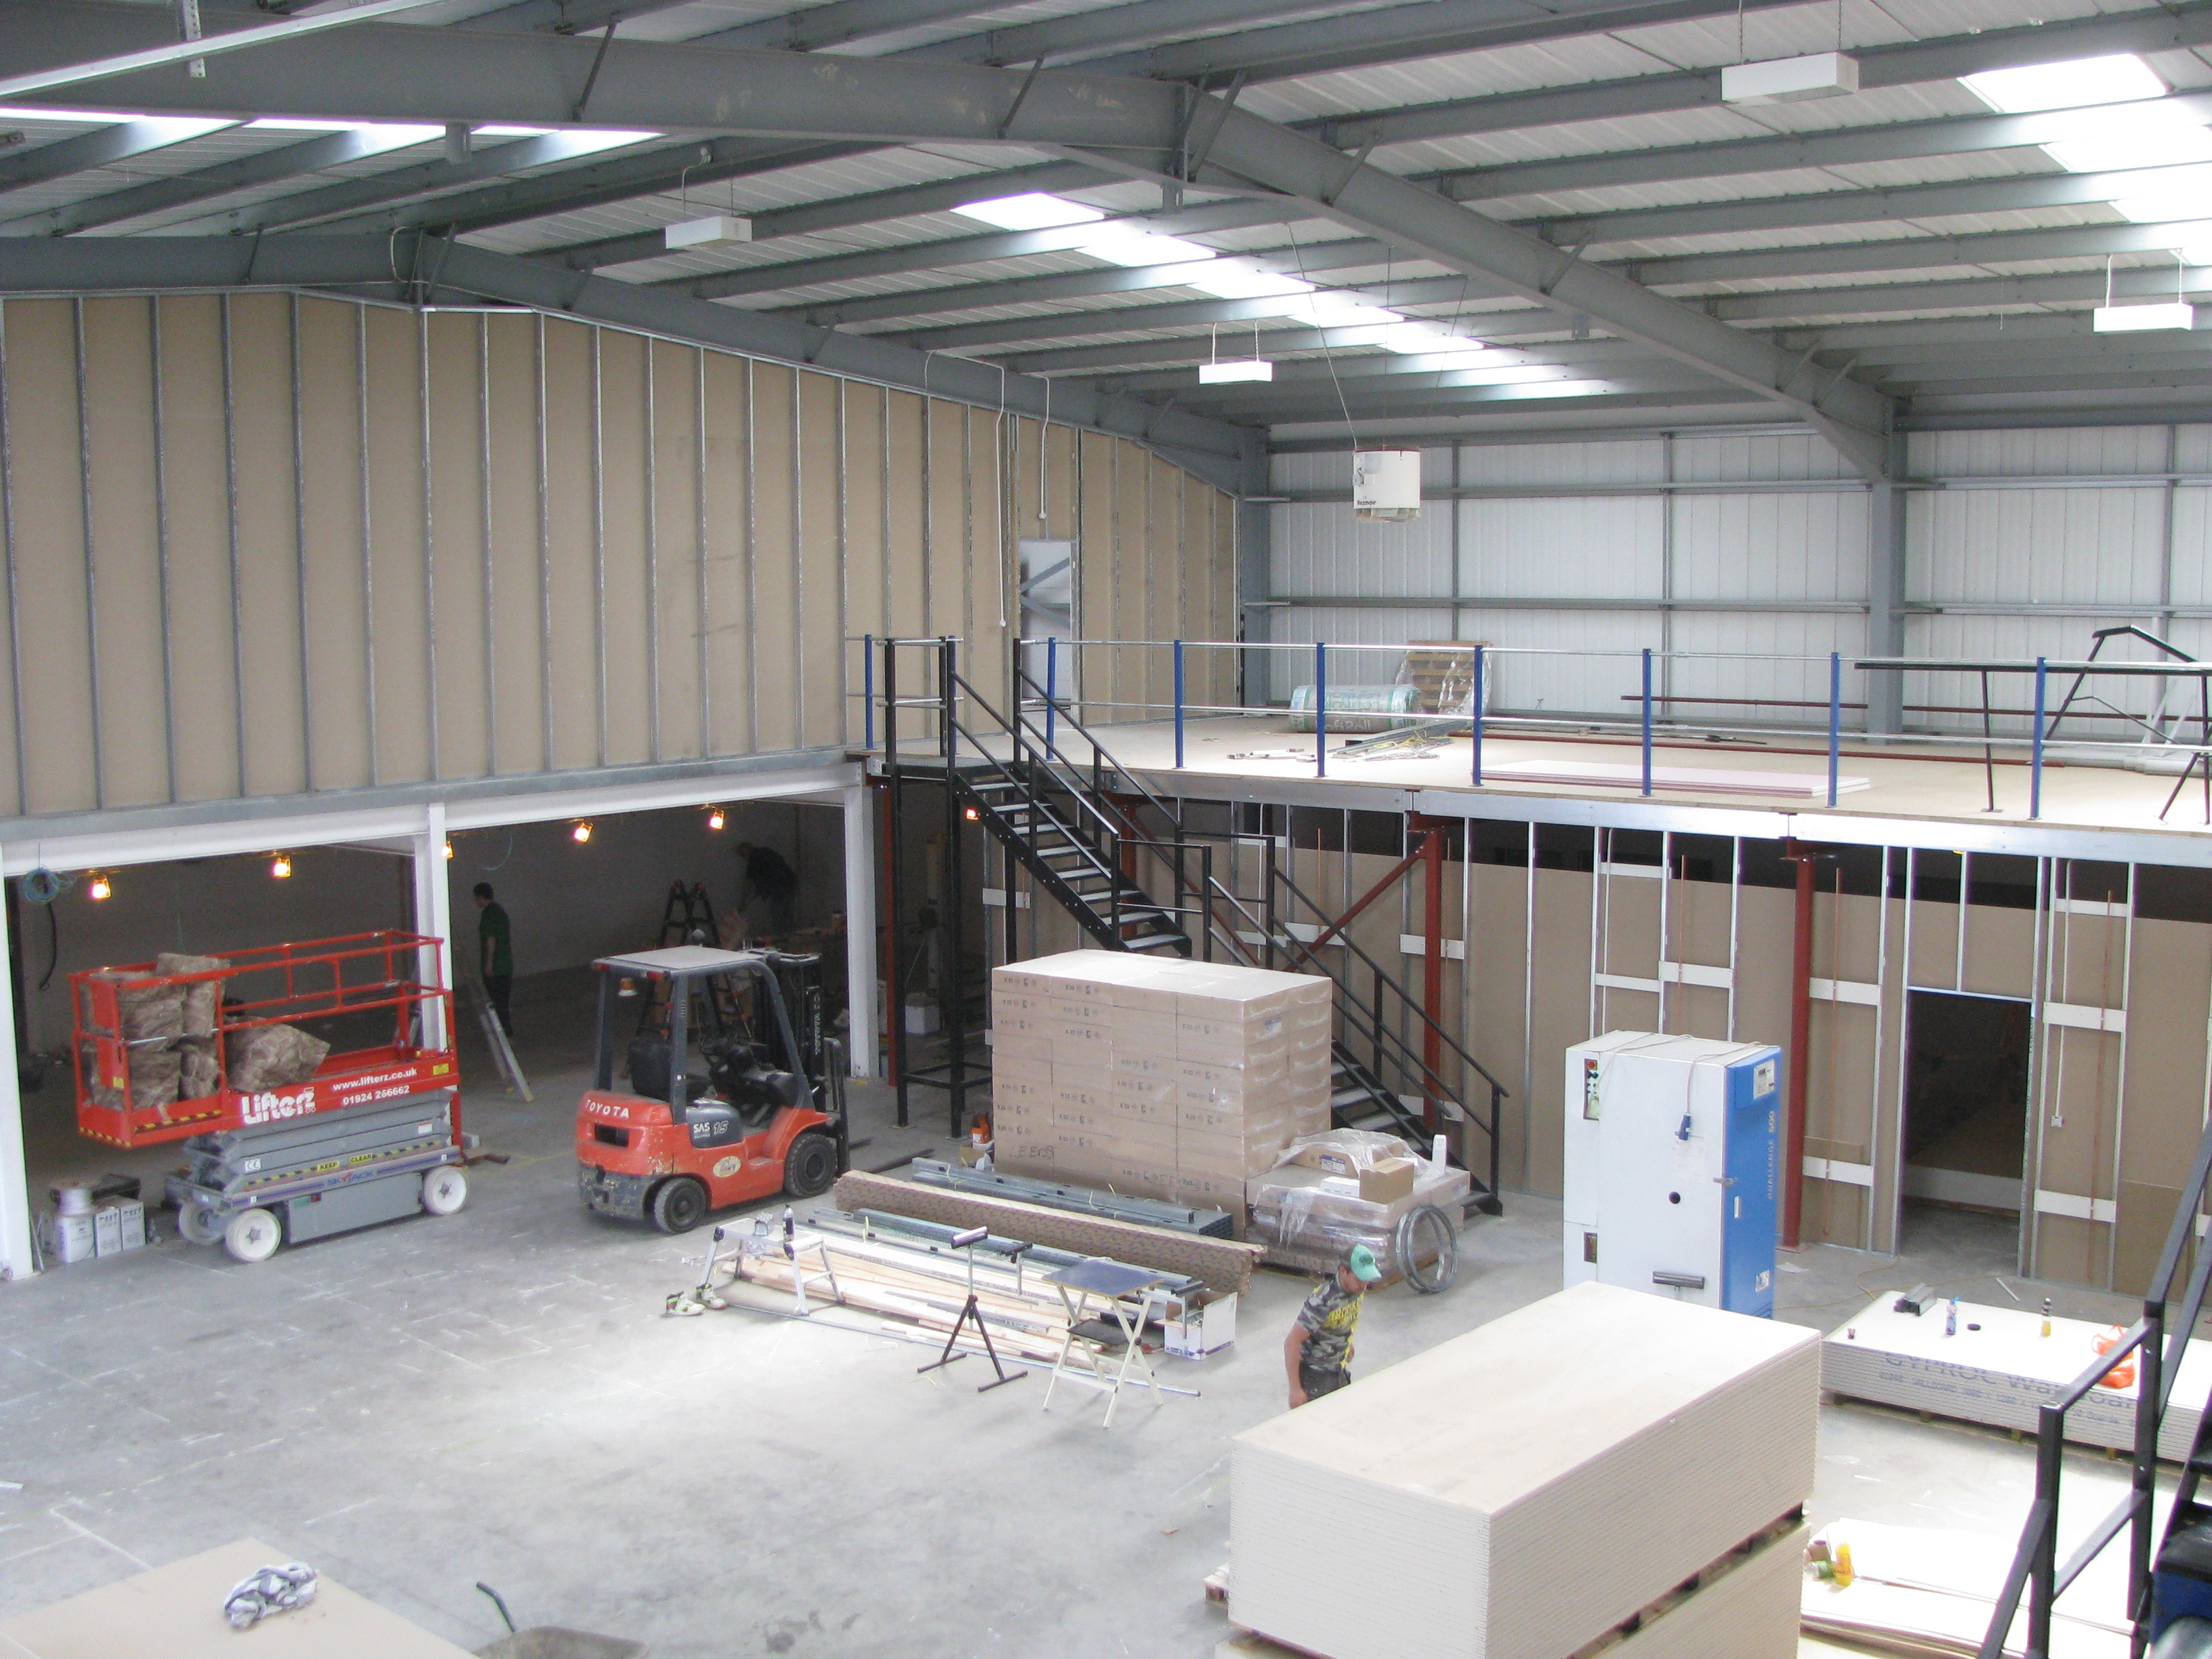 Office Mezzanine Floors - Warehouse Storage Solutions Limited